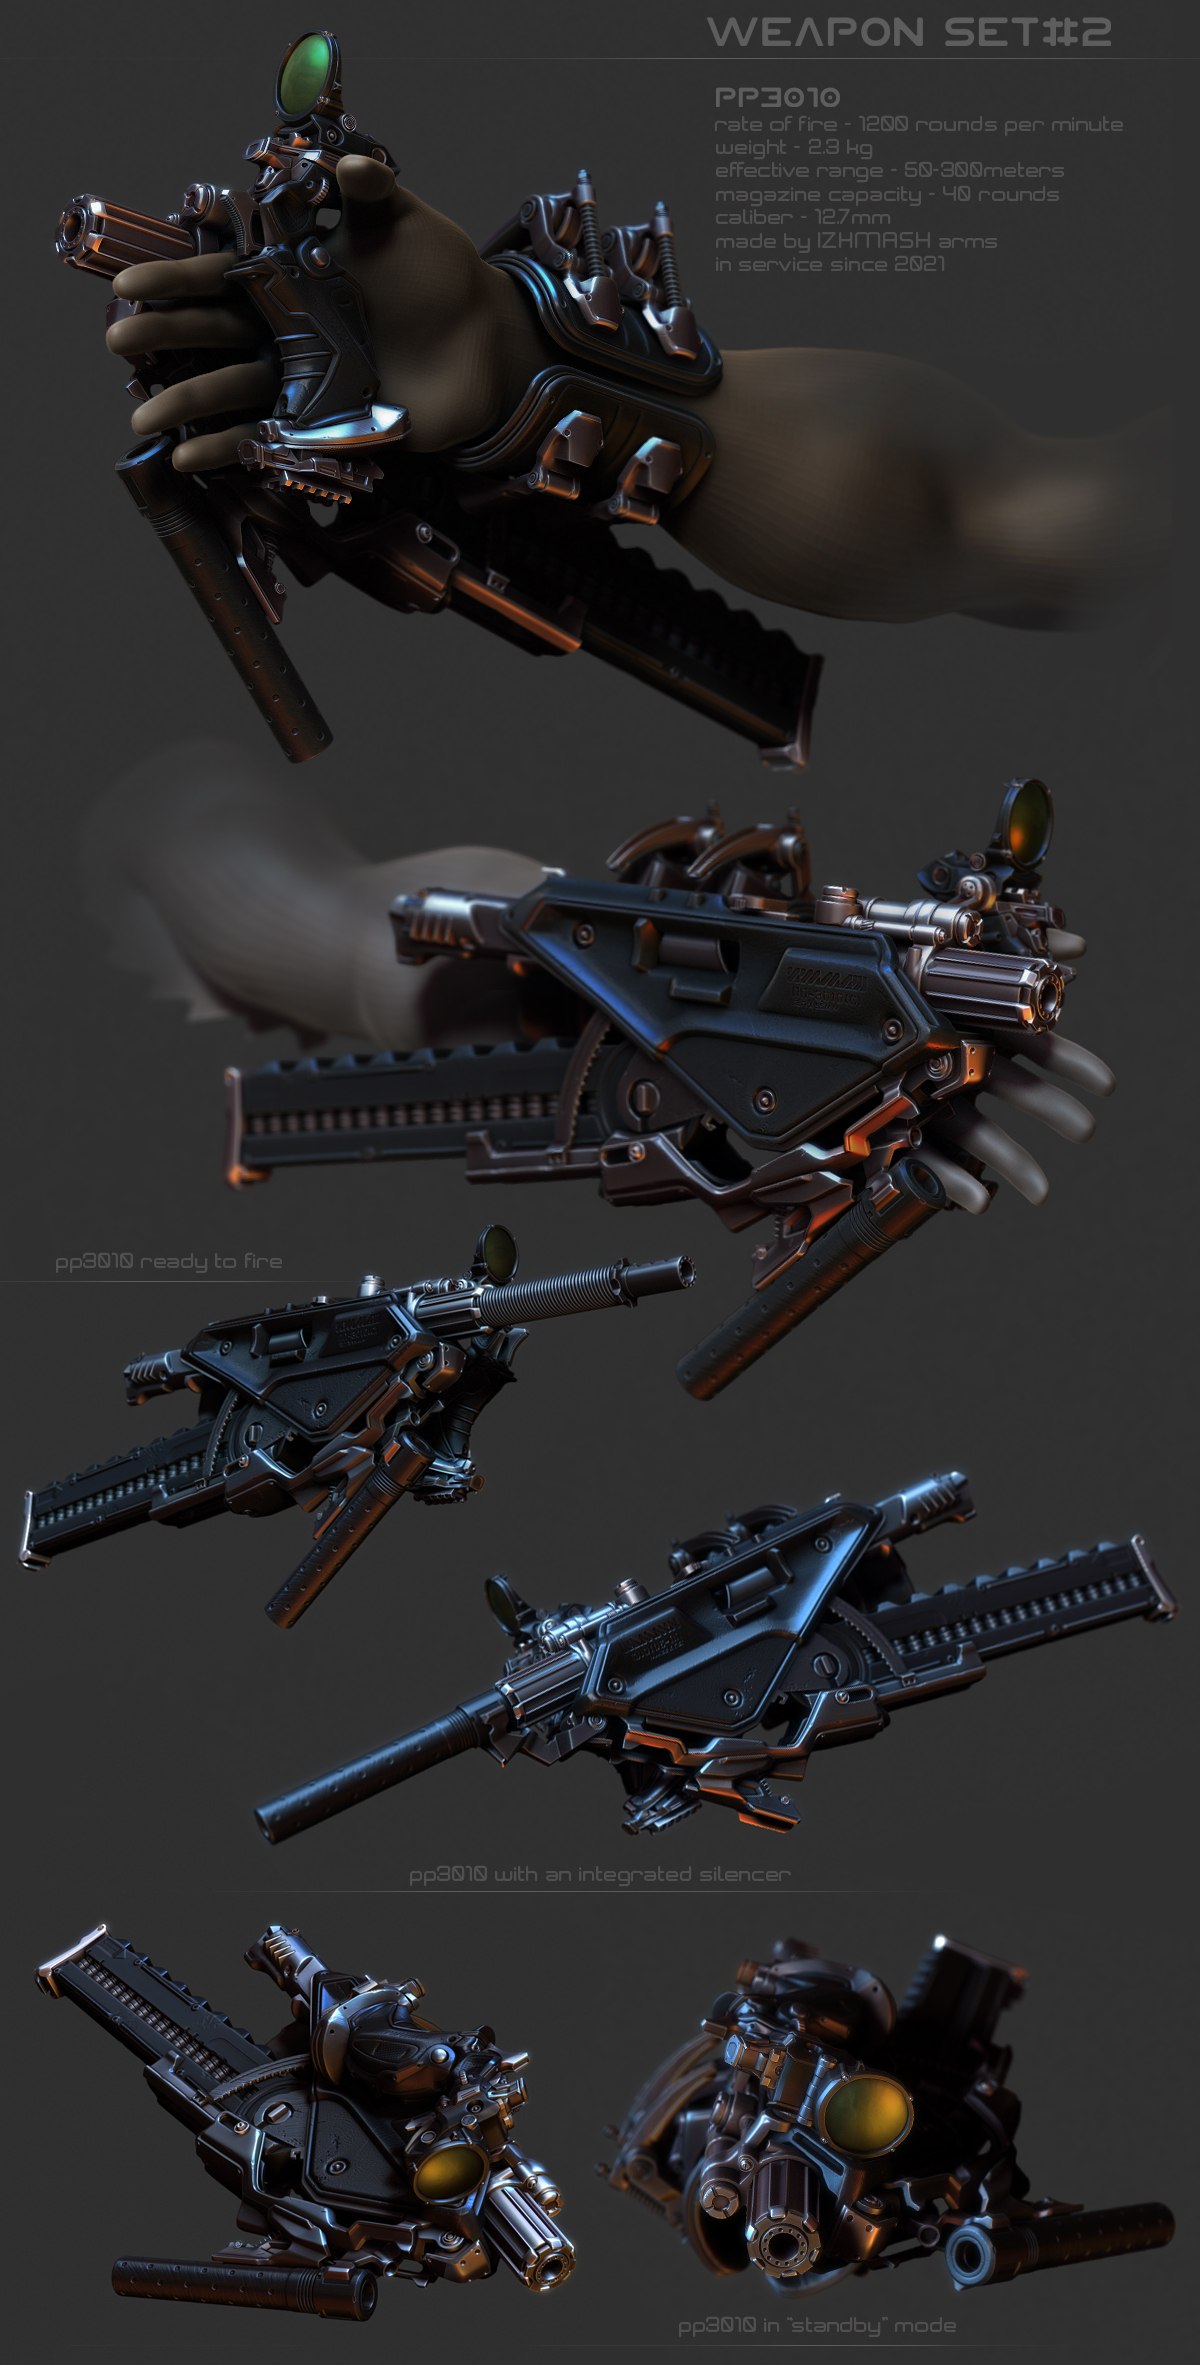 weapon set 2 by Crashmgn